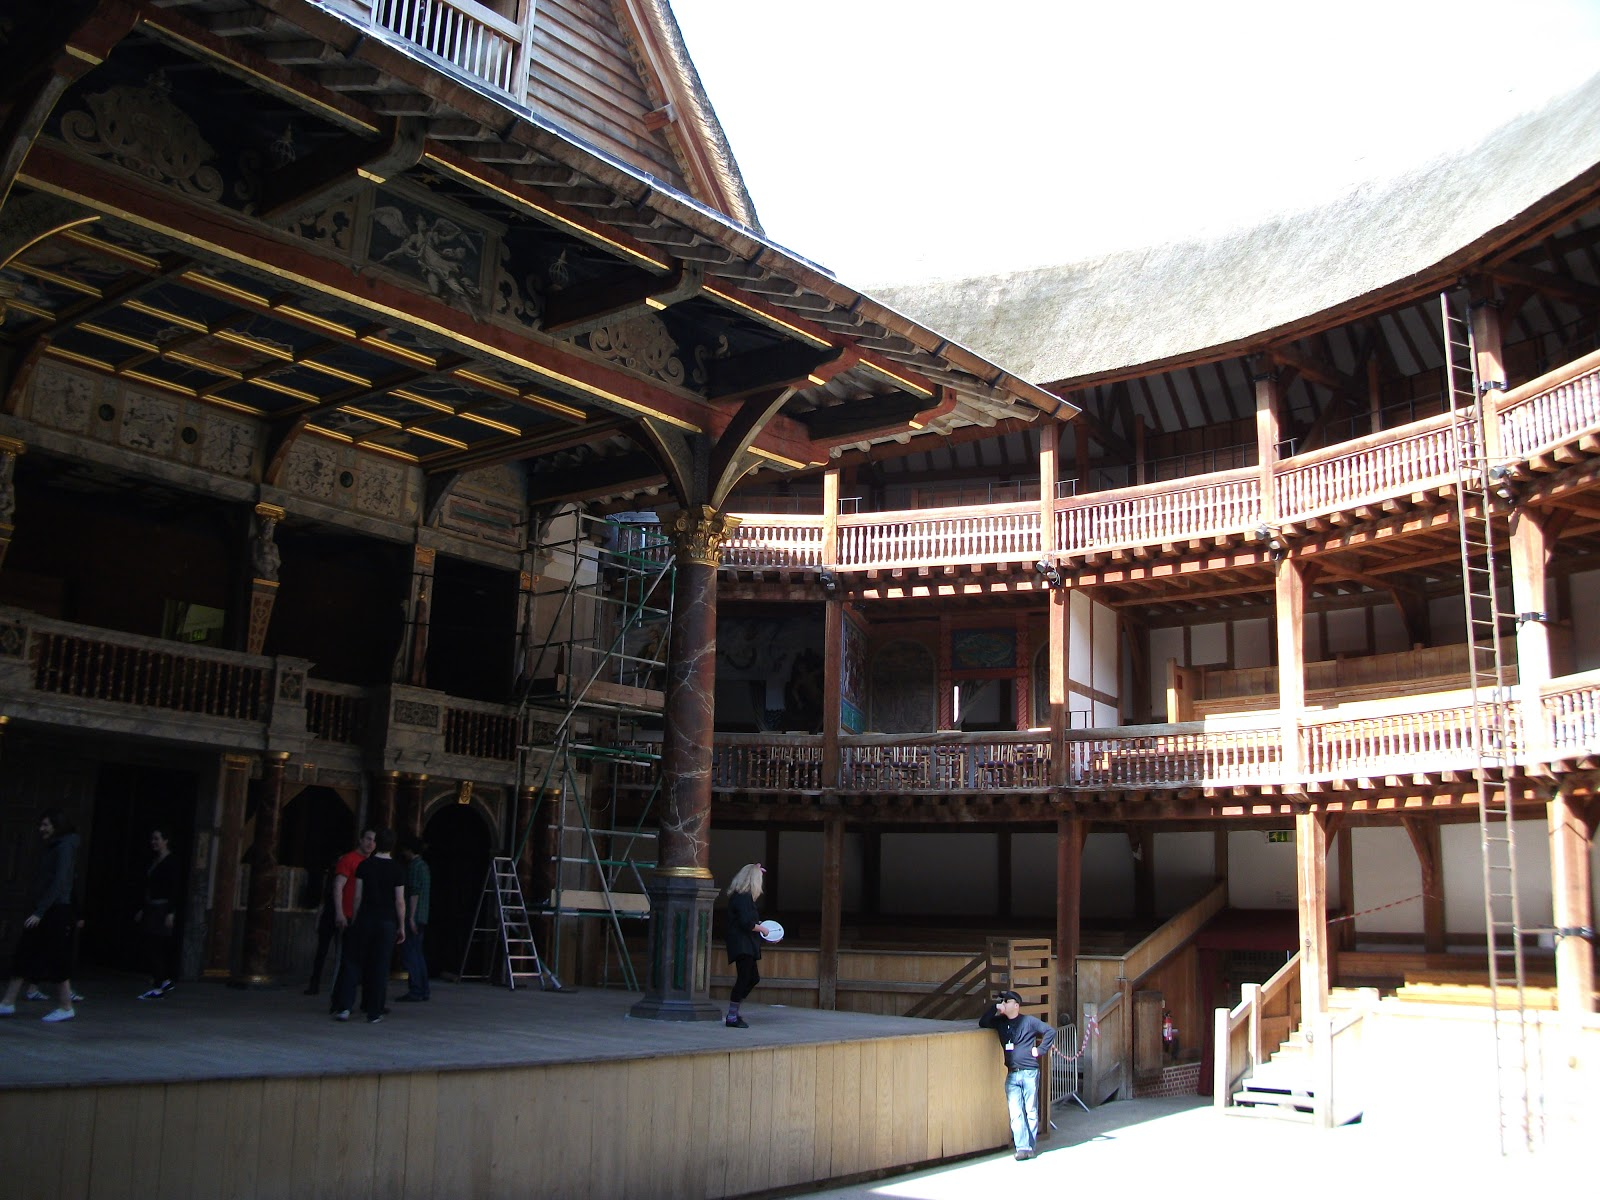 globe theater reaserch paper essay An essay by phillip depoy describes the foundation of atlanta's theater scene,  and  globe theatre research paper - best hq academic writings provided by top .